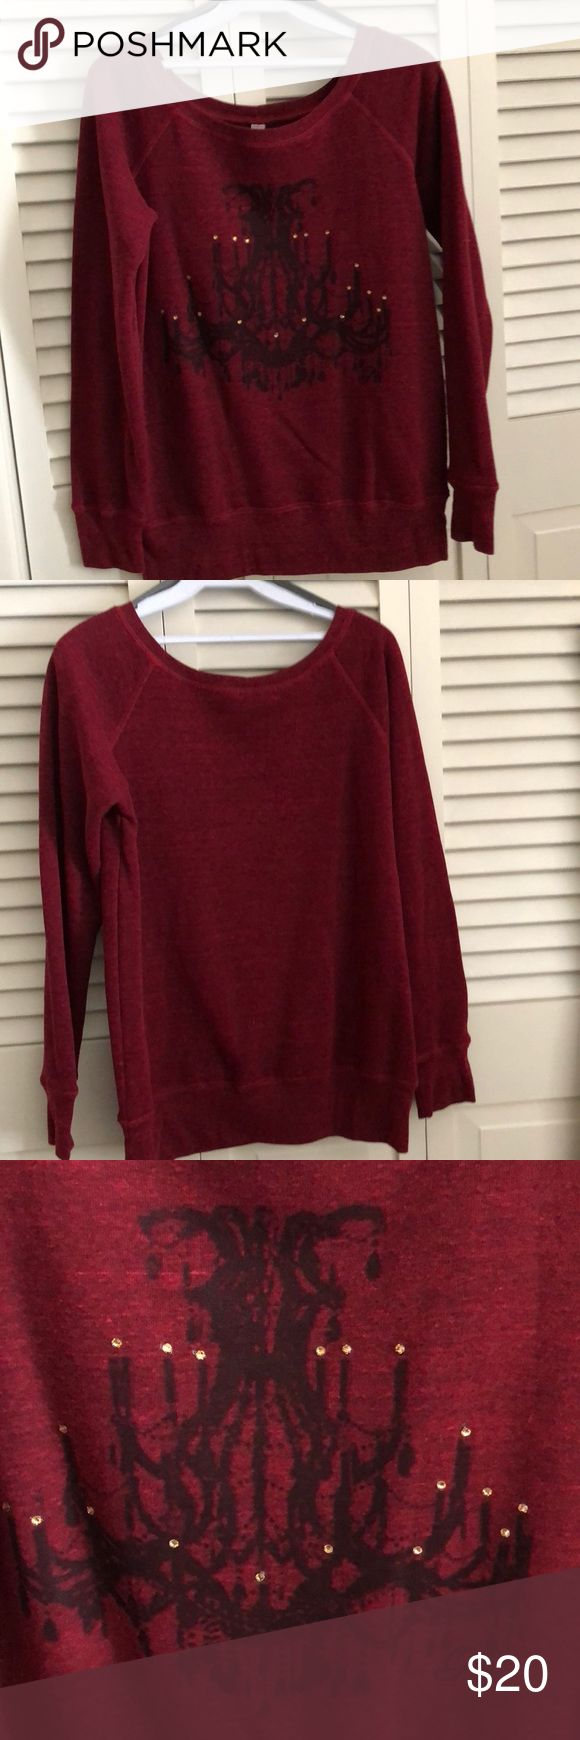 Ladies sweatshirt This is a ladies sweatshirt in a wine color with a chandelier in the front. Also has some crystals. It is size small , only worn once, great shape. Runs large for a small. Has bands on the sleeves and the bottom. bella Tops Sweatshirts & Hoodies